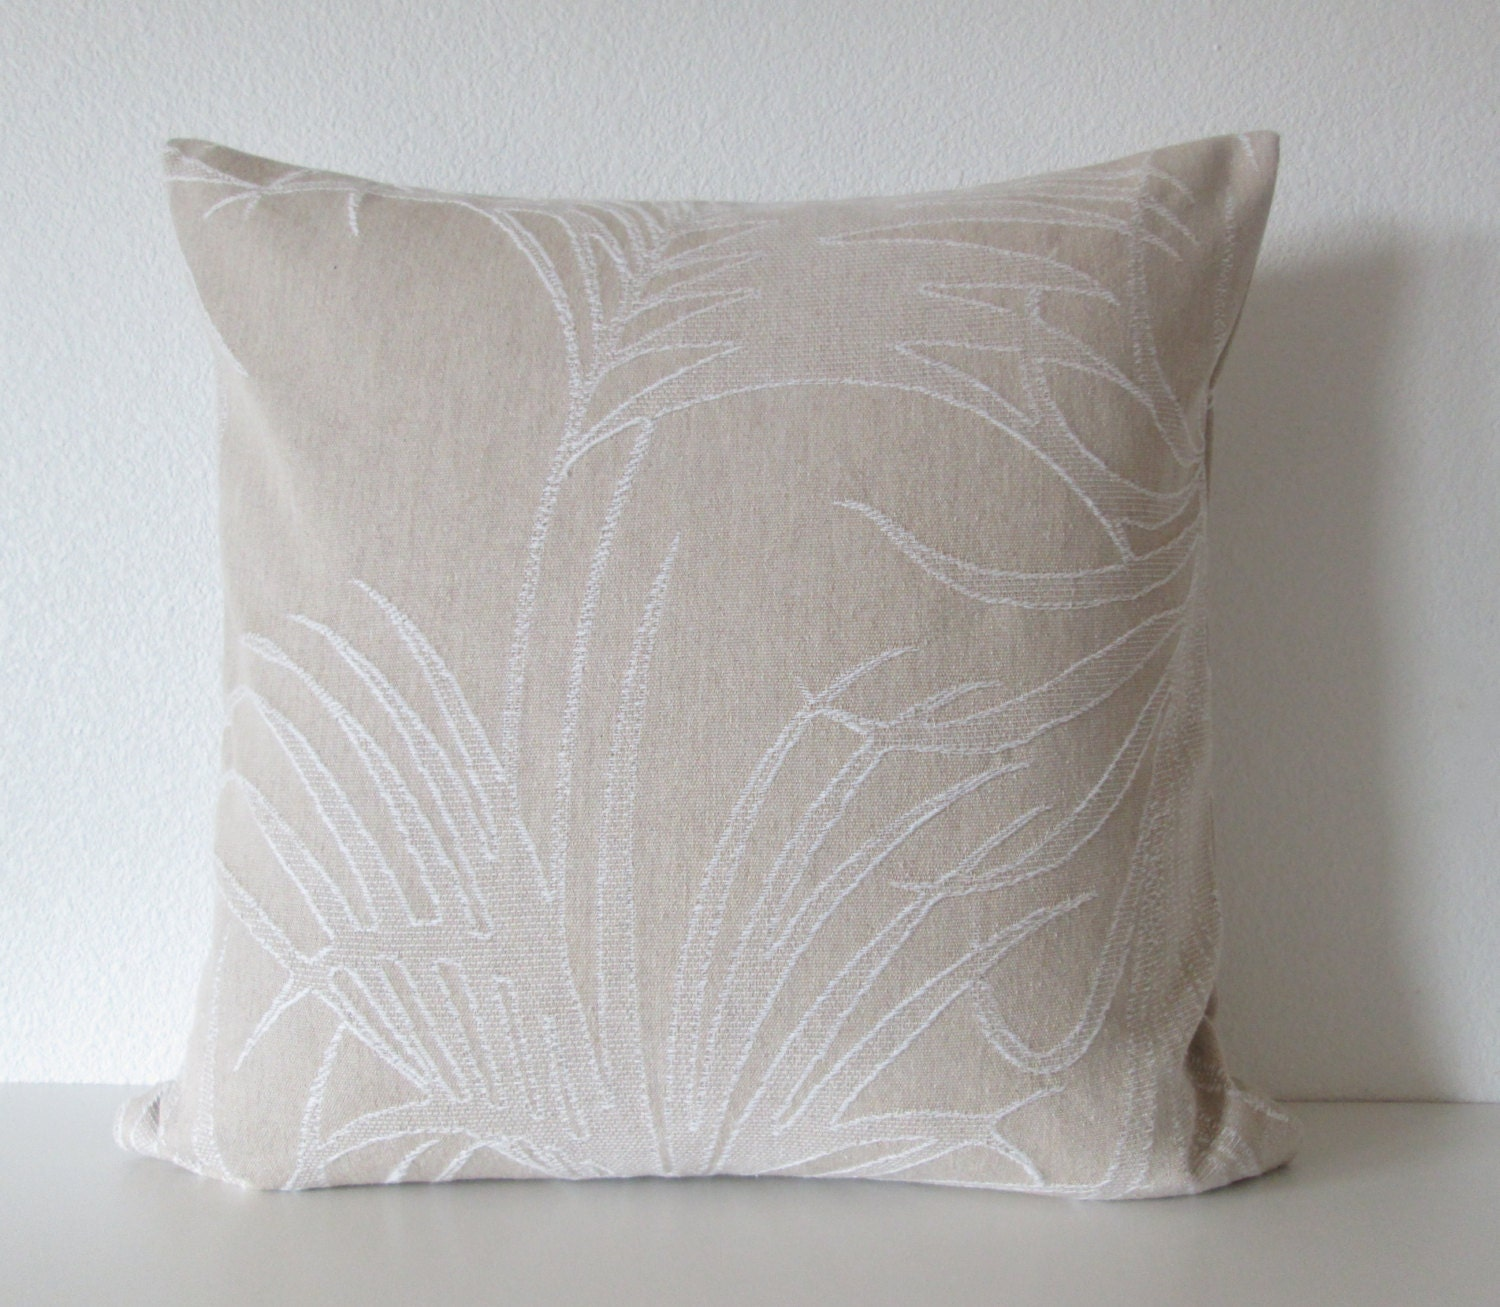 Natural Decorative Pillow : Natural beige large palm leafs decorative throw pillow cover